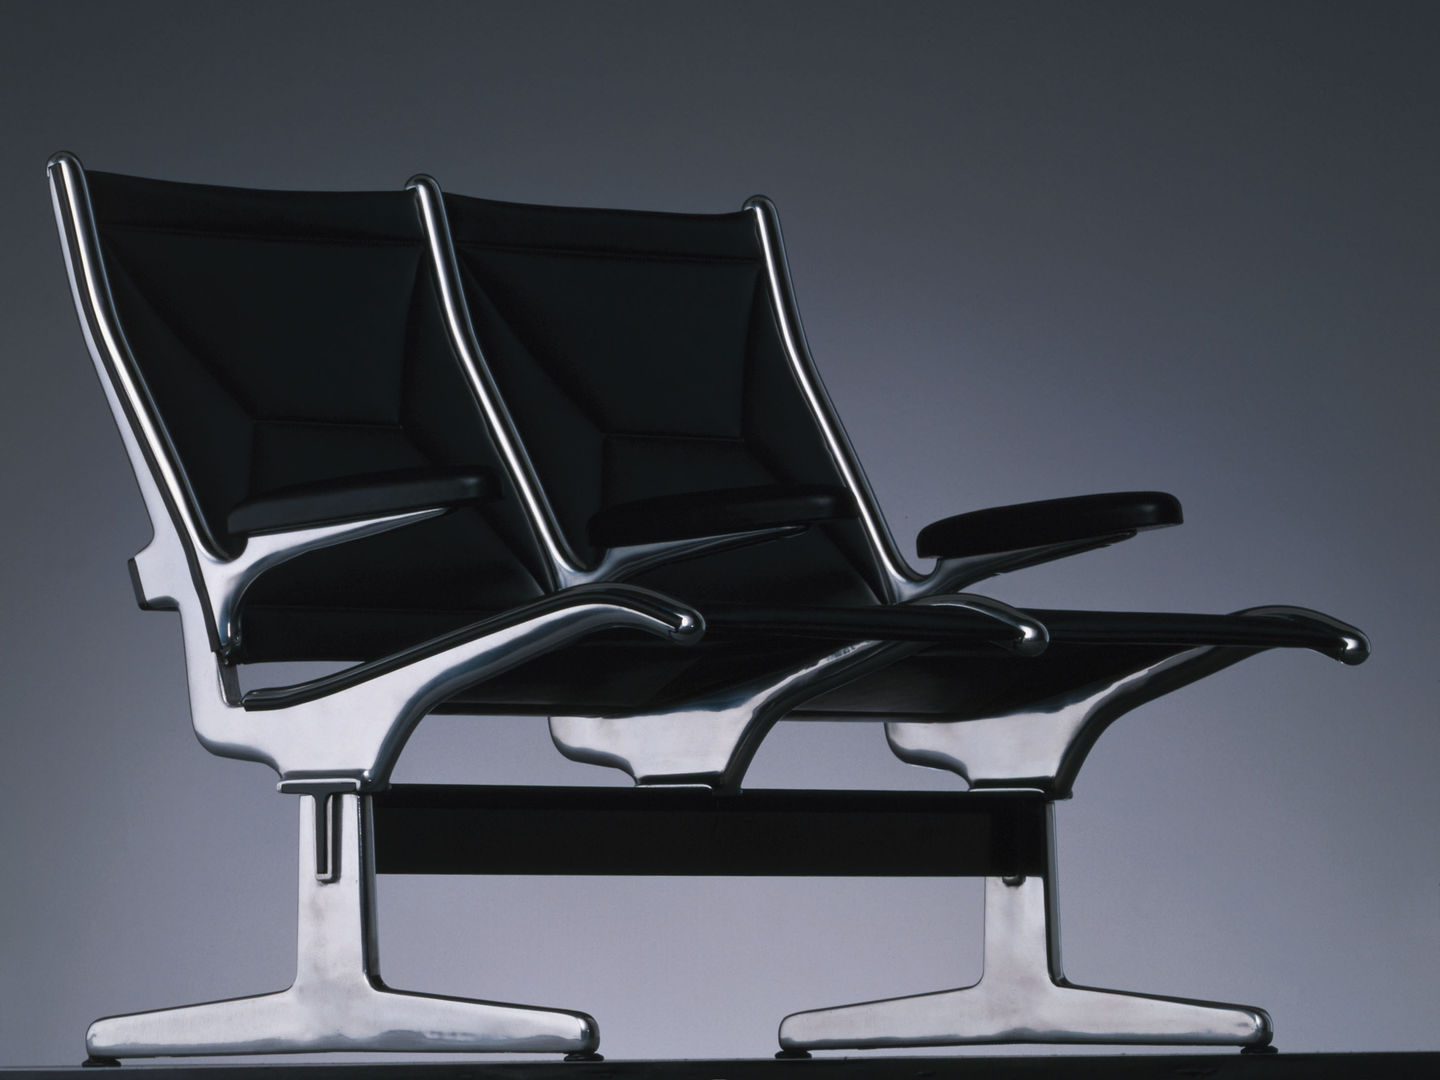 Tandem Seating Is A Robust Time Proven System That Provides A Comfortable Place To Relax While Waiting In Airports Train Stations Or Other Public Spaces